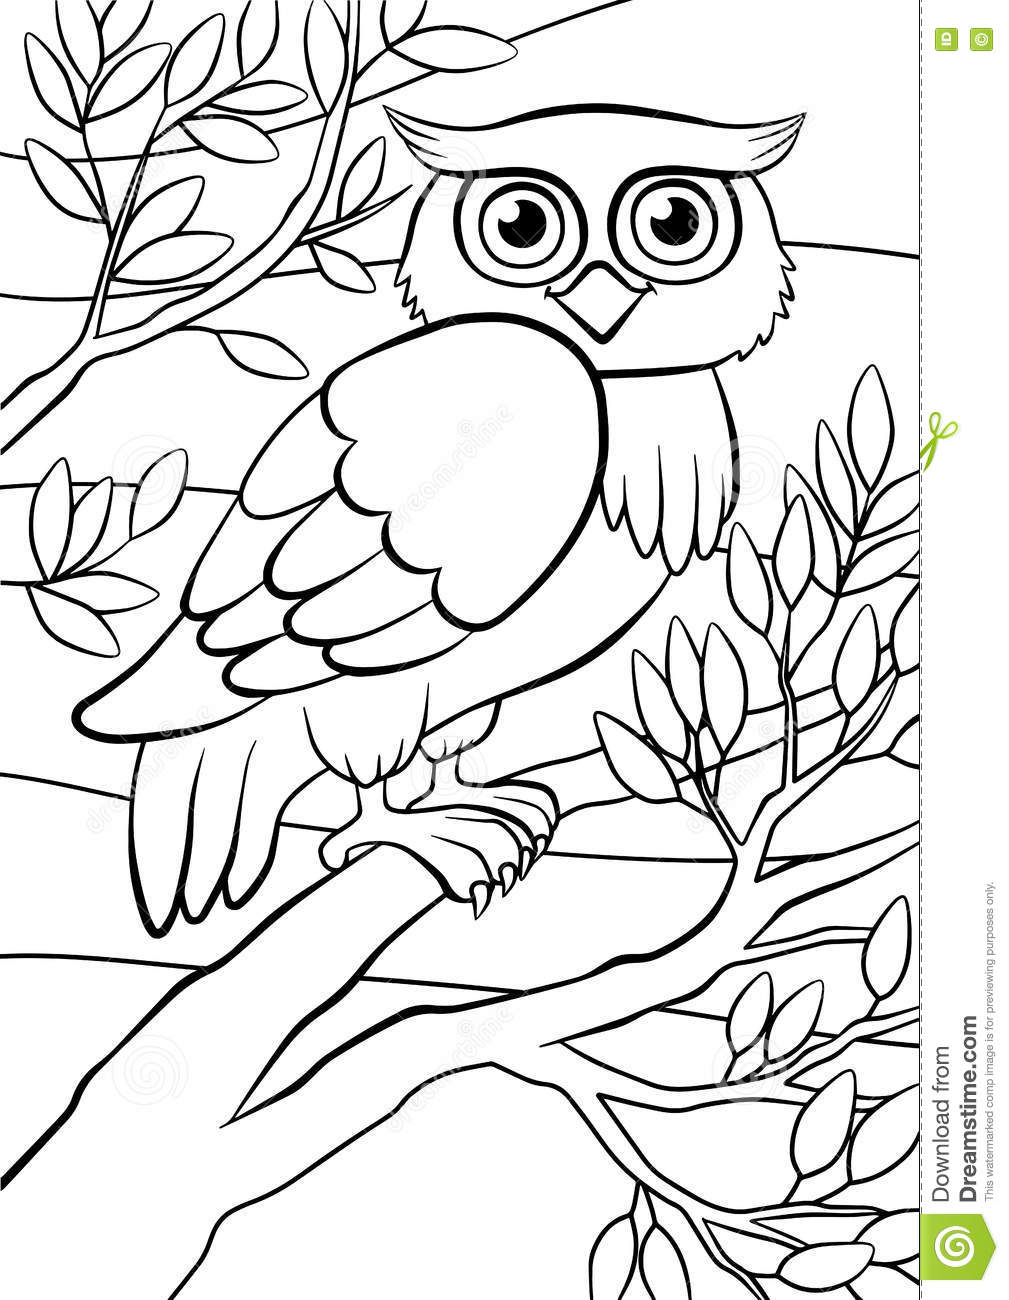 50 Top Coloring Pages For Bird Images & Pictures In HD